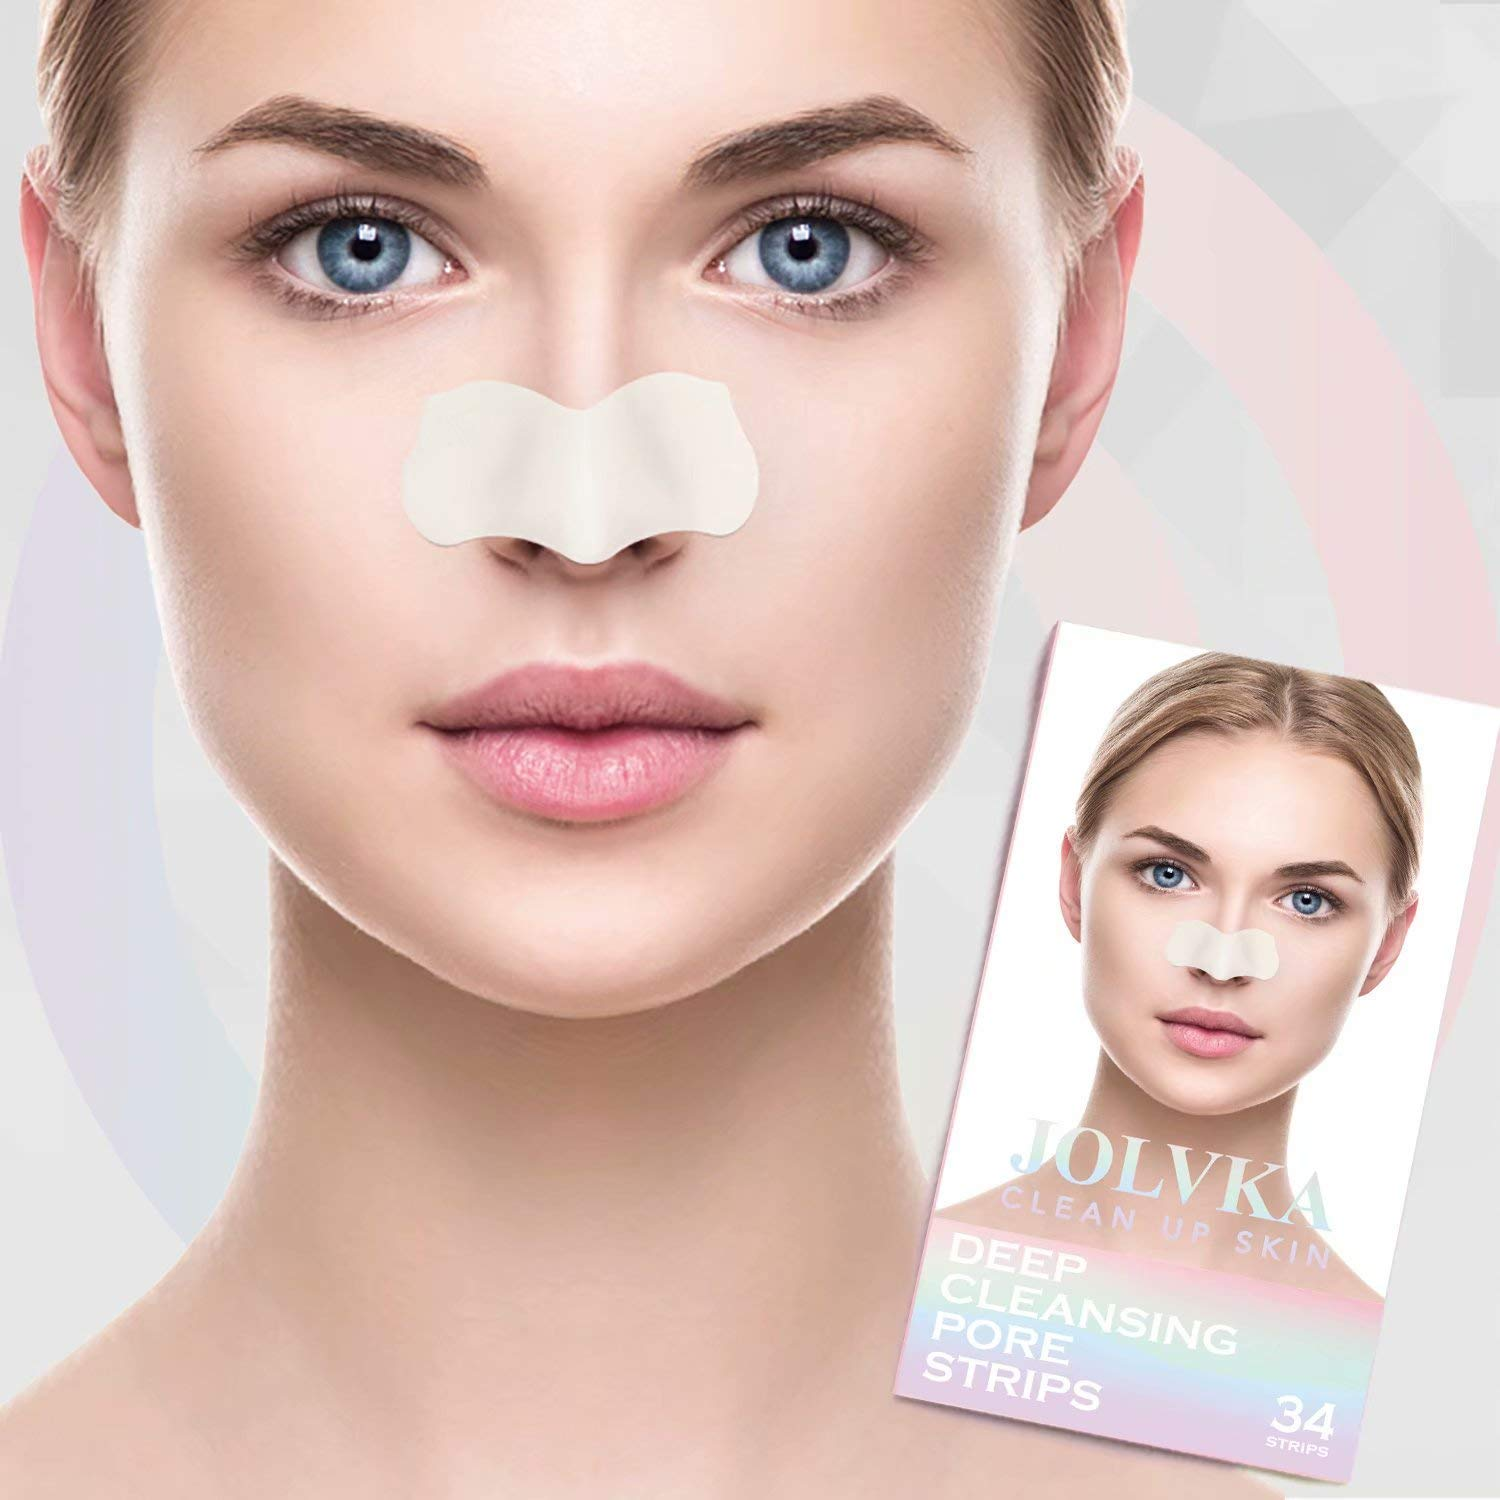 Blackhead Pore Strips, Blackhead Remover Deep Cleansing Pore Strips For Nose, 34 Strips, HypoAllergenic and Oil Free